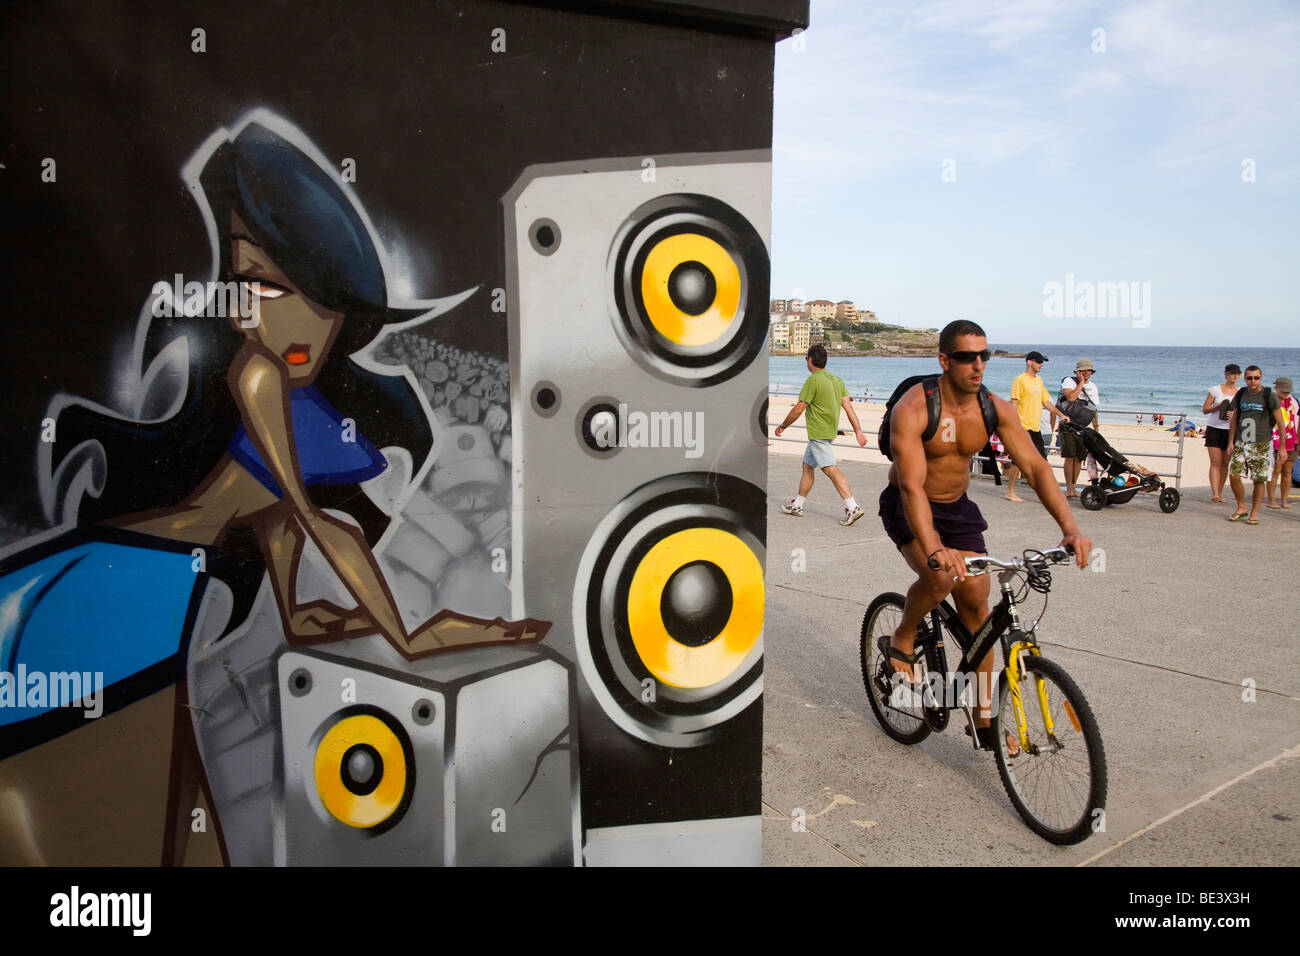 Graffiti artwork and locals on the promenade at Bondi Beach. Sydney, New South Wales, AUSTRALIA - Stock Image